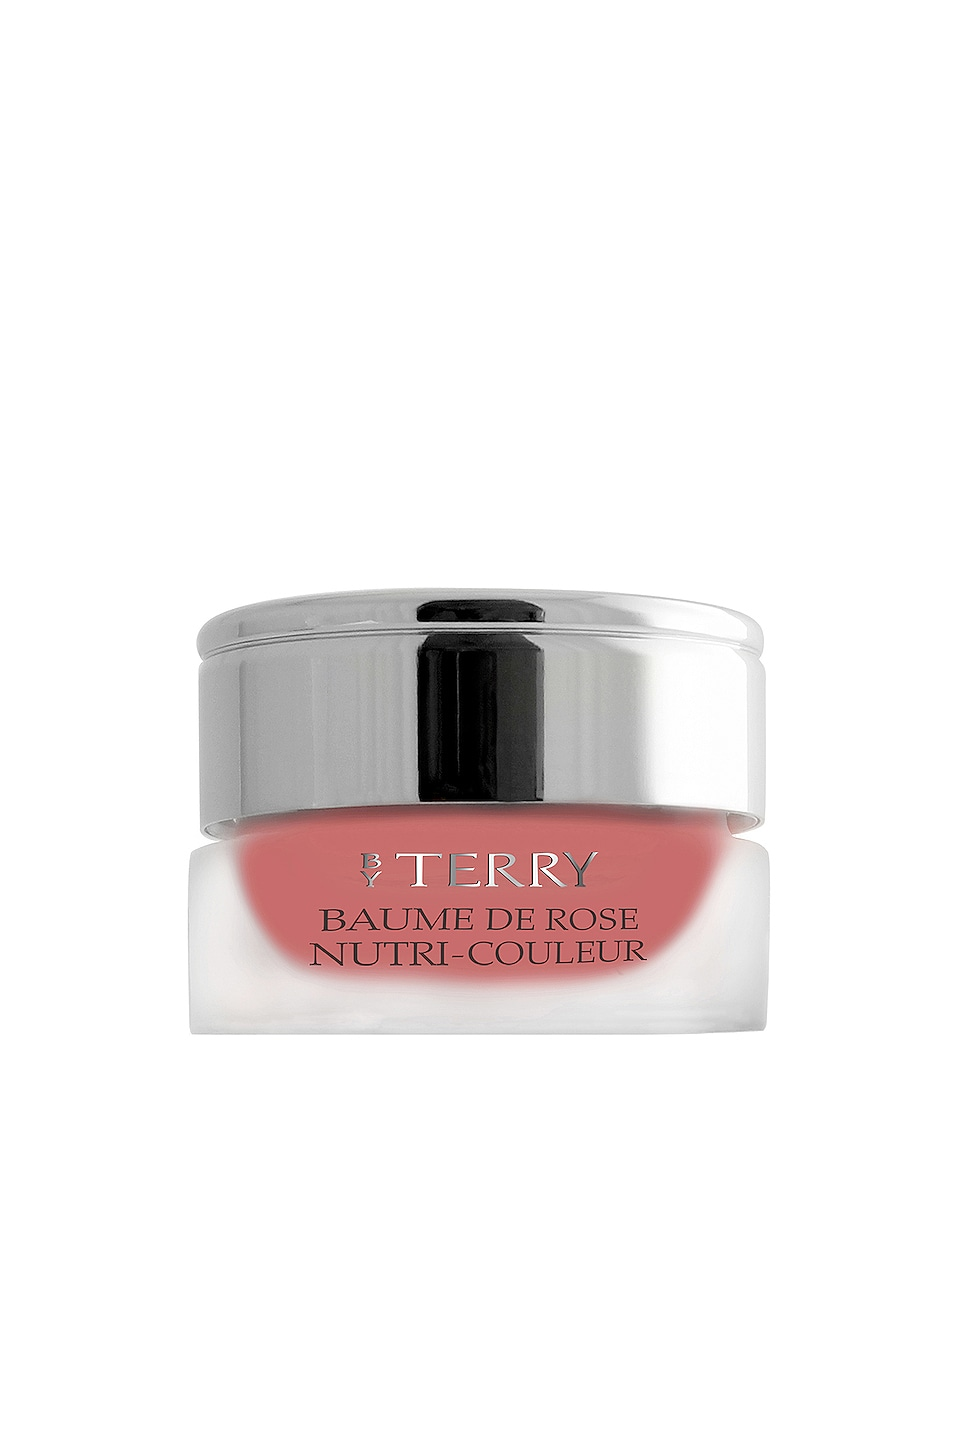 By Terry Baume De Rose Nutri Couleur in Toffee Cream